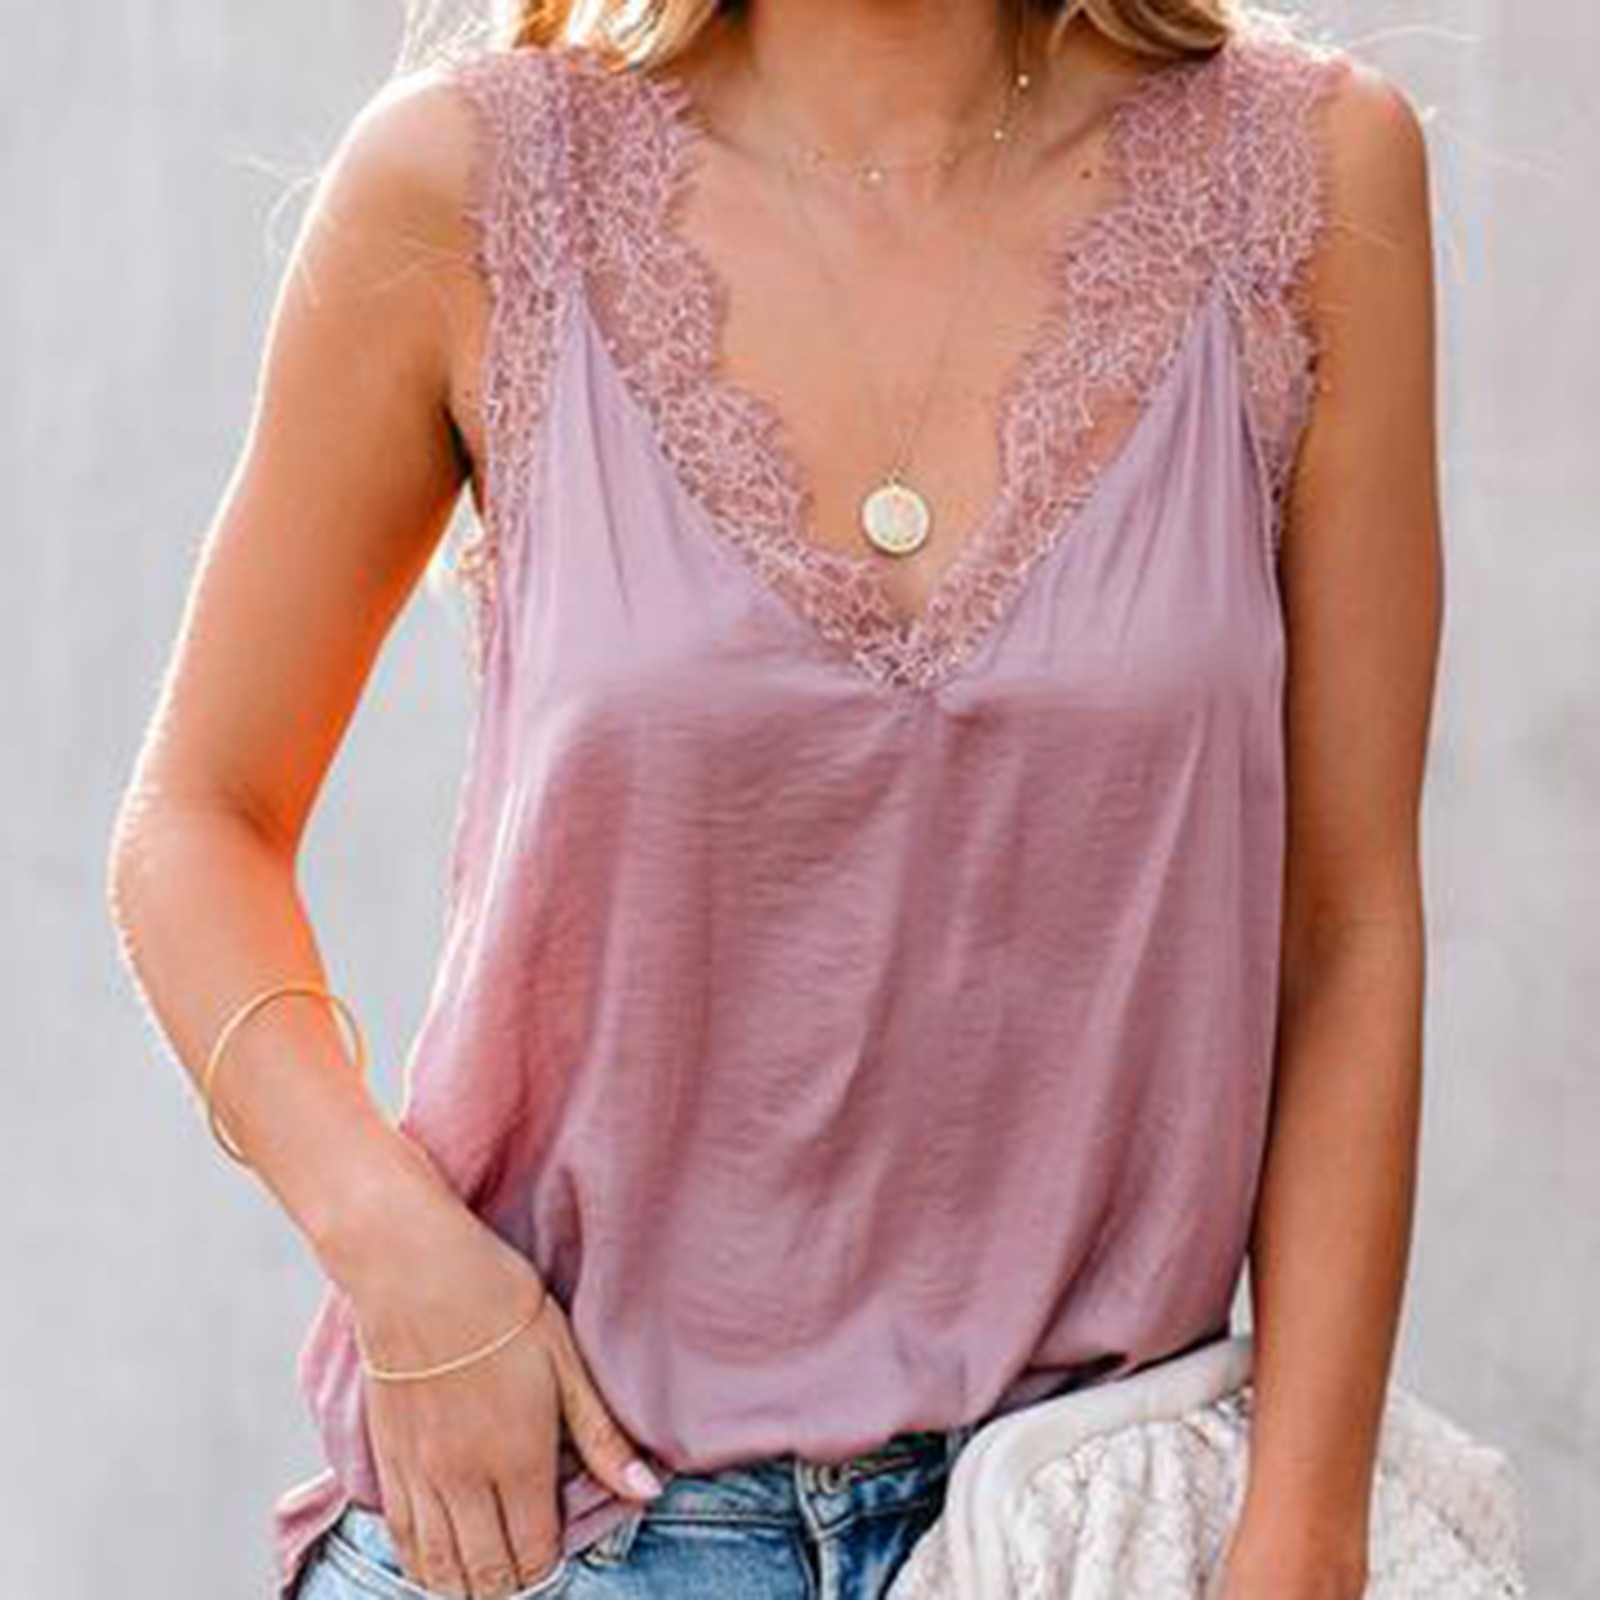 40# Lace Elegant T-shirts Women's White Splicing V-neck Plus Size Tee Tops Casual Sleeveless Summer T-shirts Блузка Женская